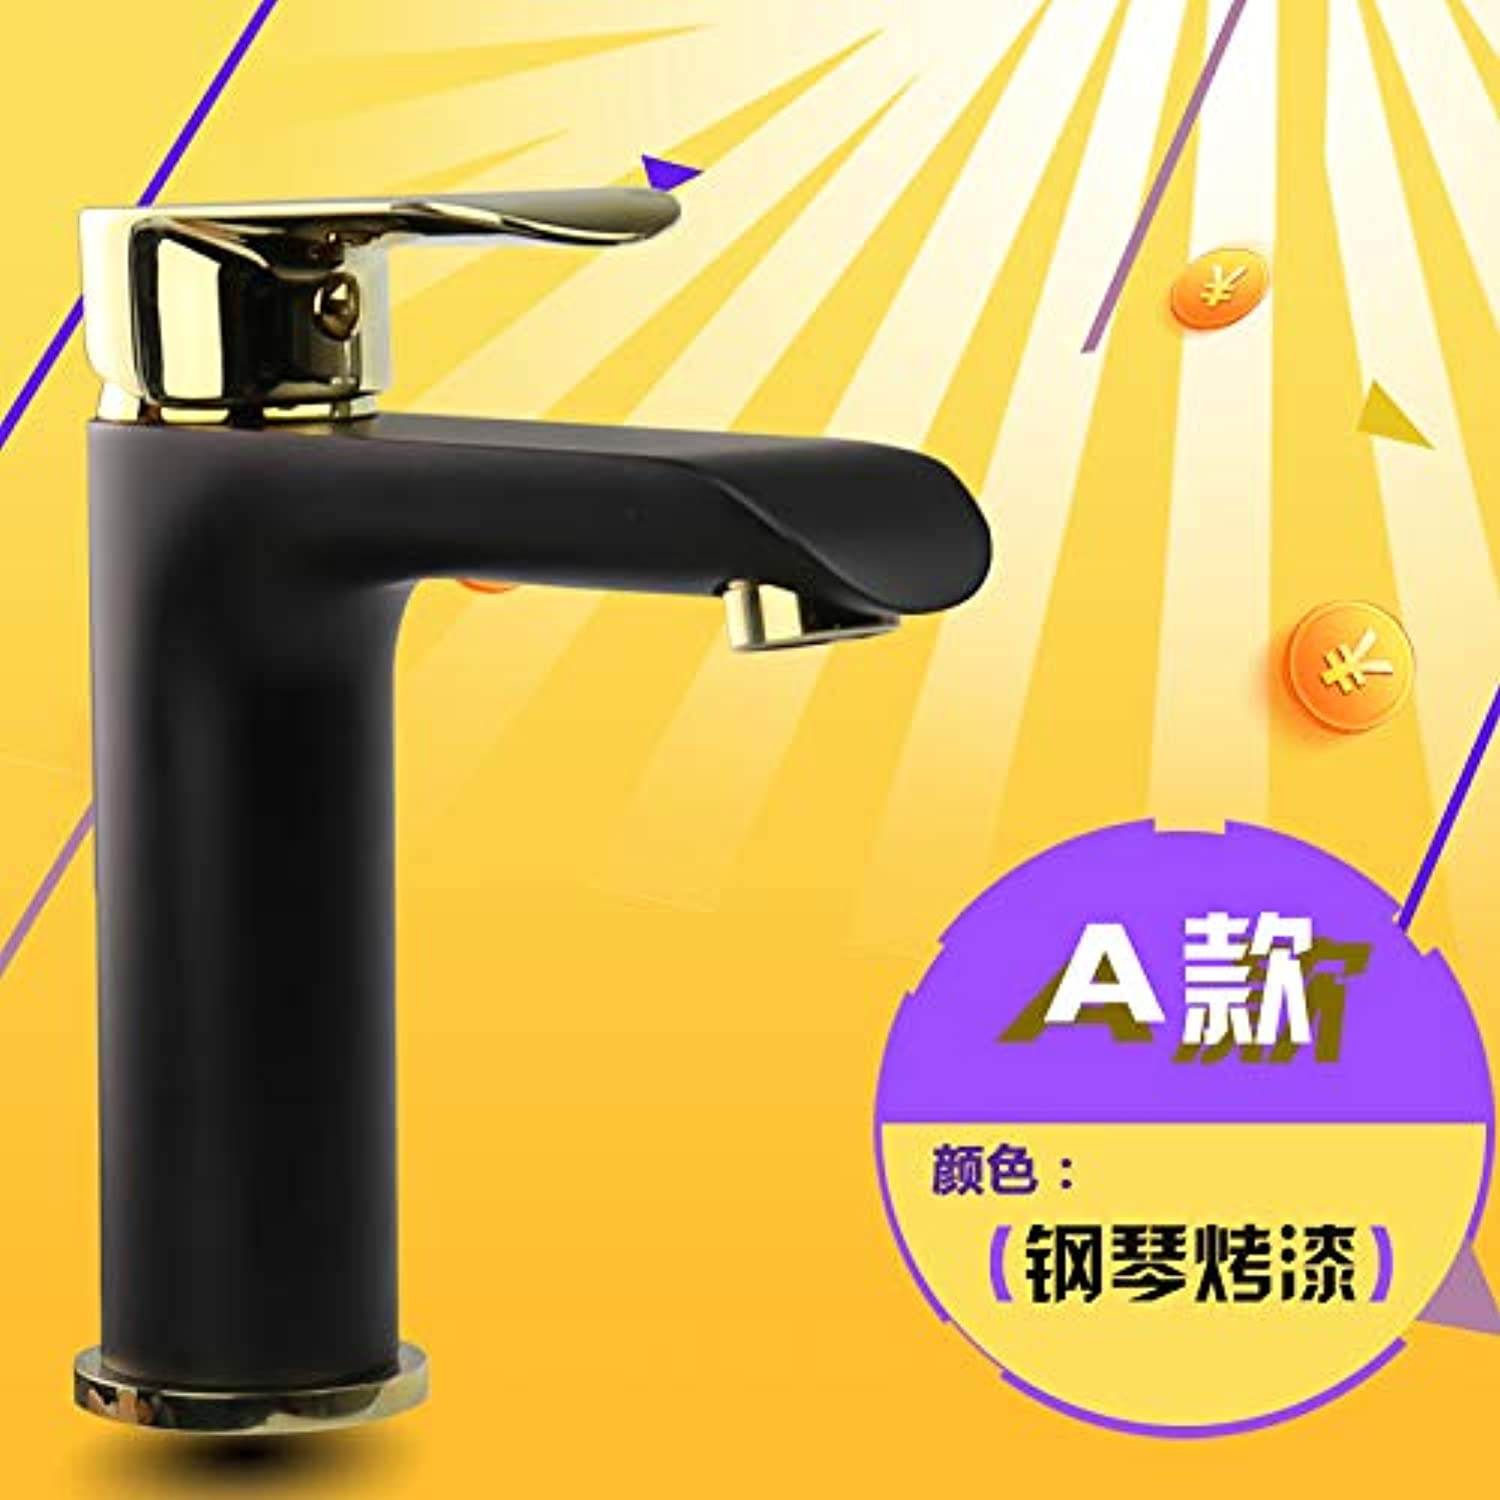 Hlluya Professional Sink Mixer Tap Kitchen Faucet Black antique faucet full copper hot and cold check basin wash basins wash basins single hole, Piano Black Grill Qin